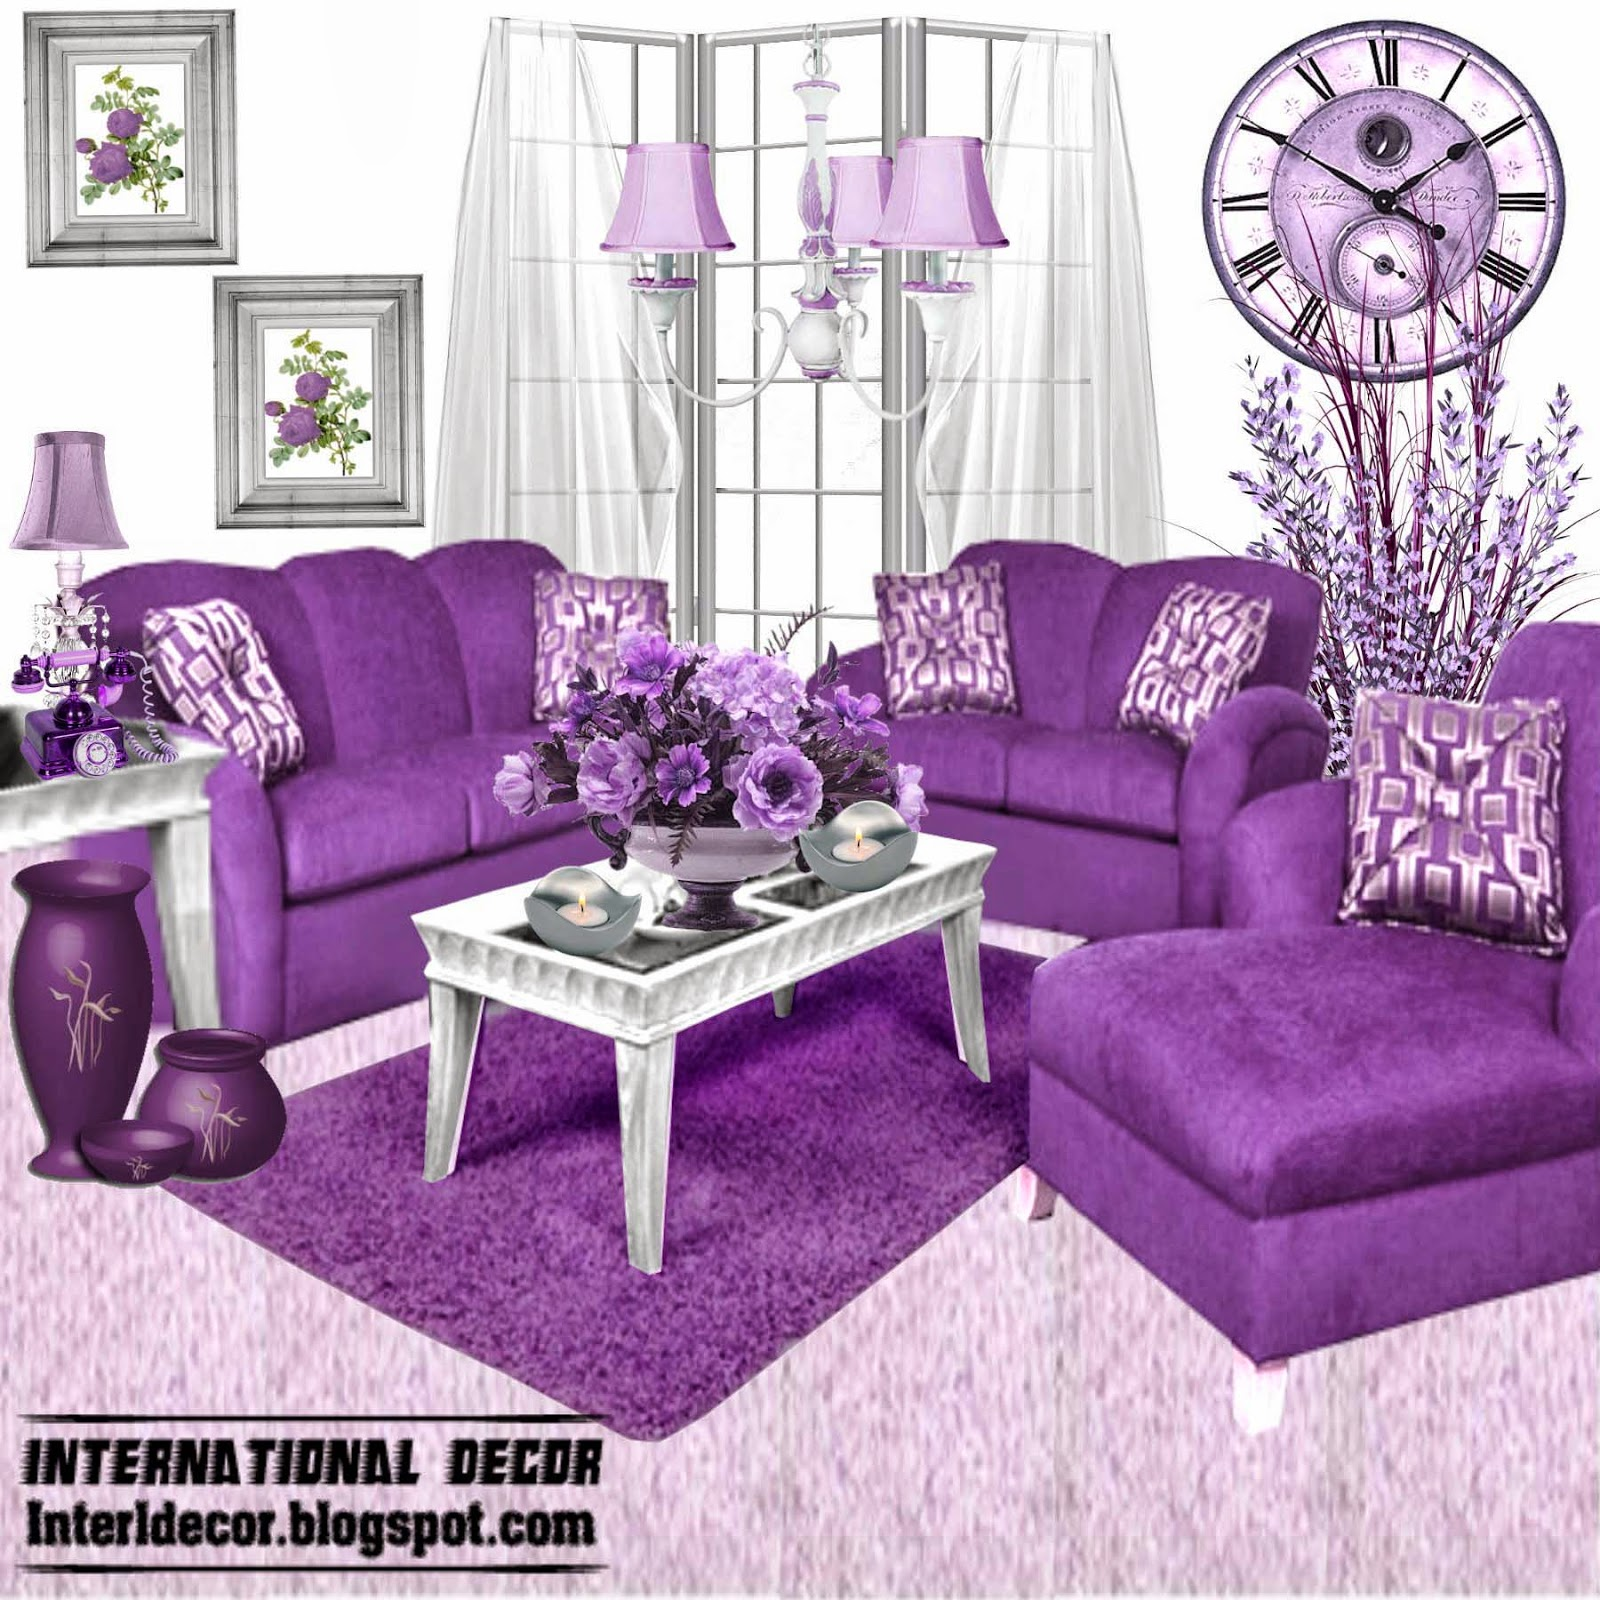 Purple furniture for the home pinterest purple for Living room chair set